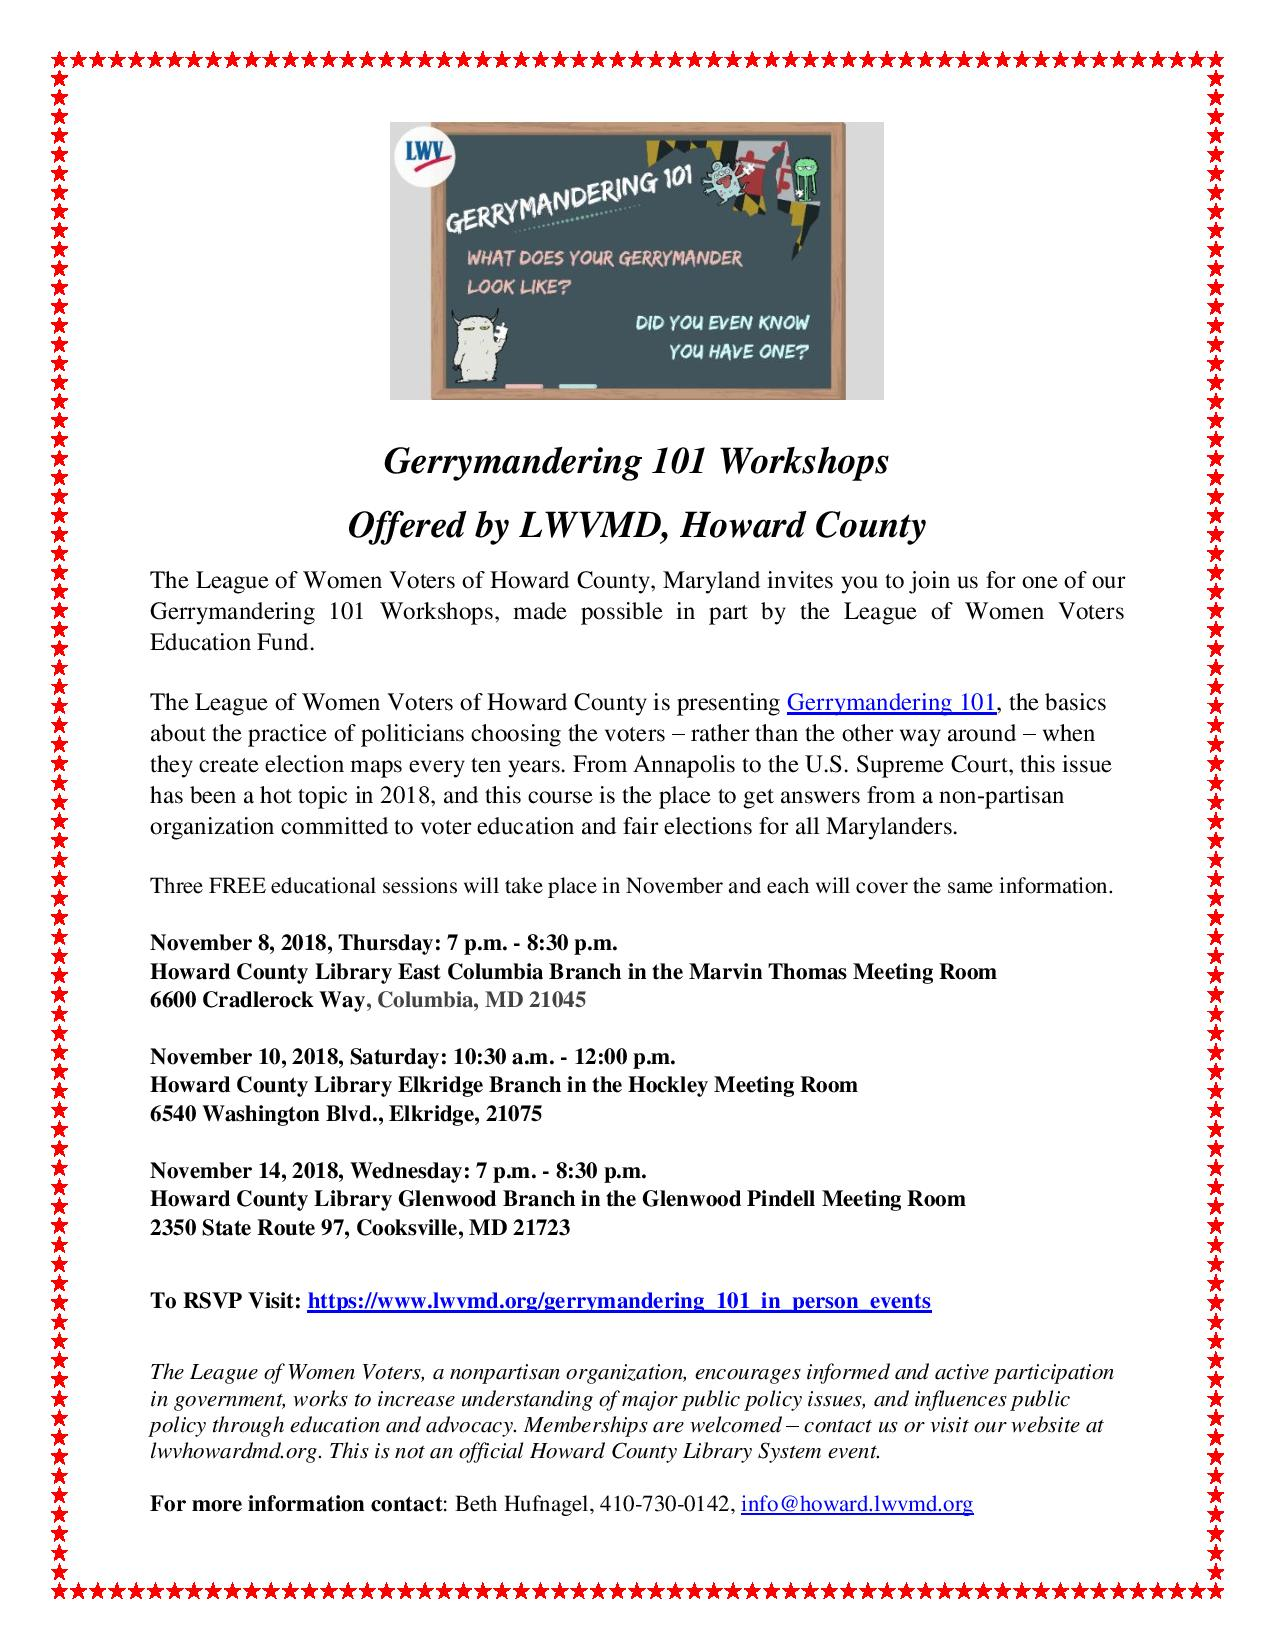 Gerrymandering 101 Workshop